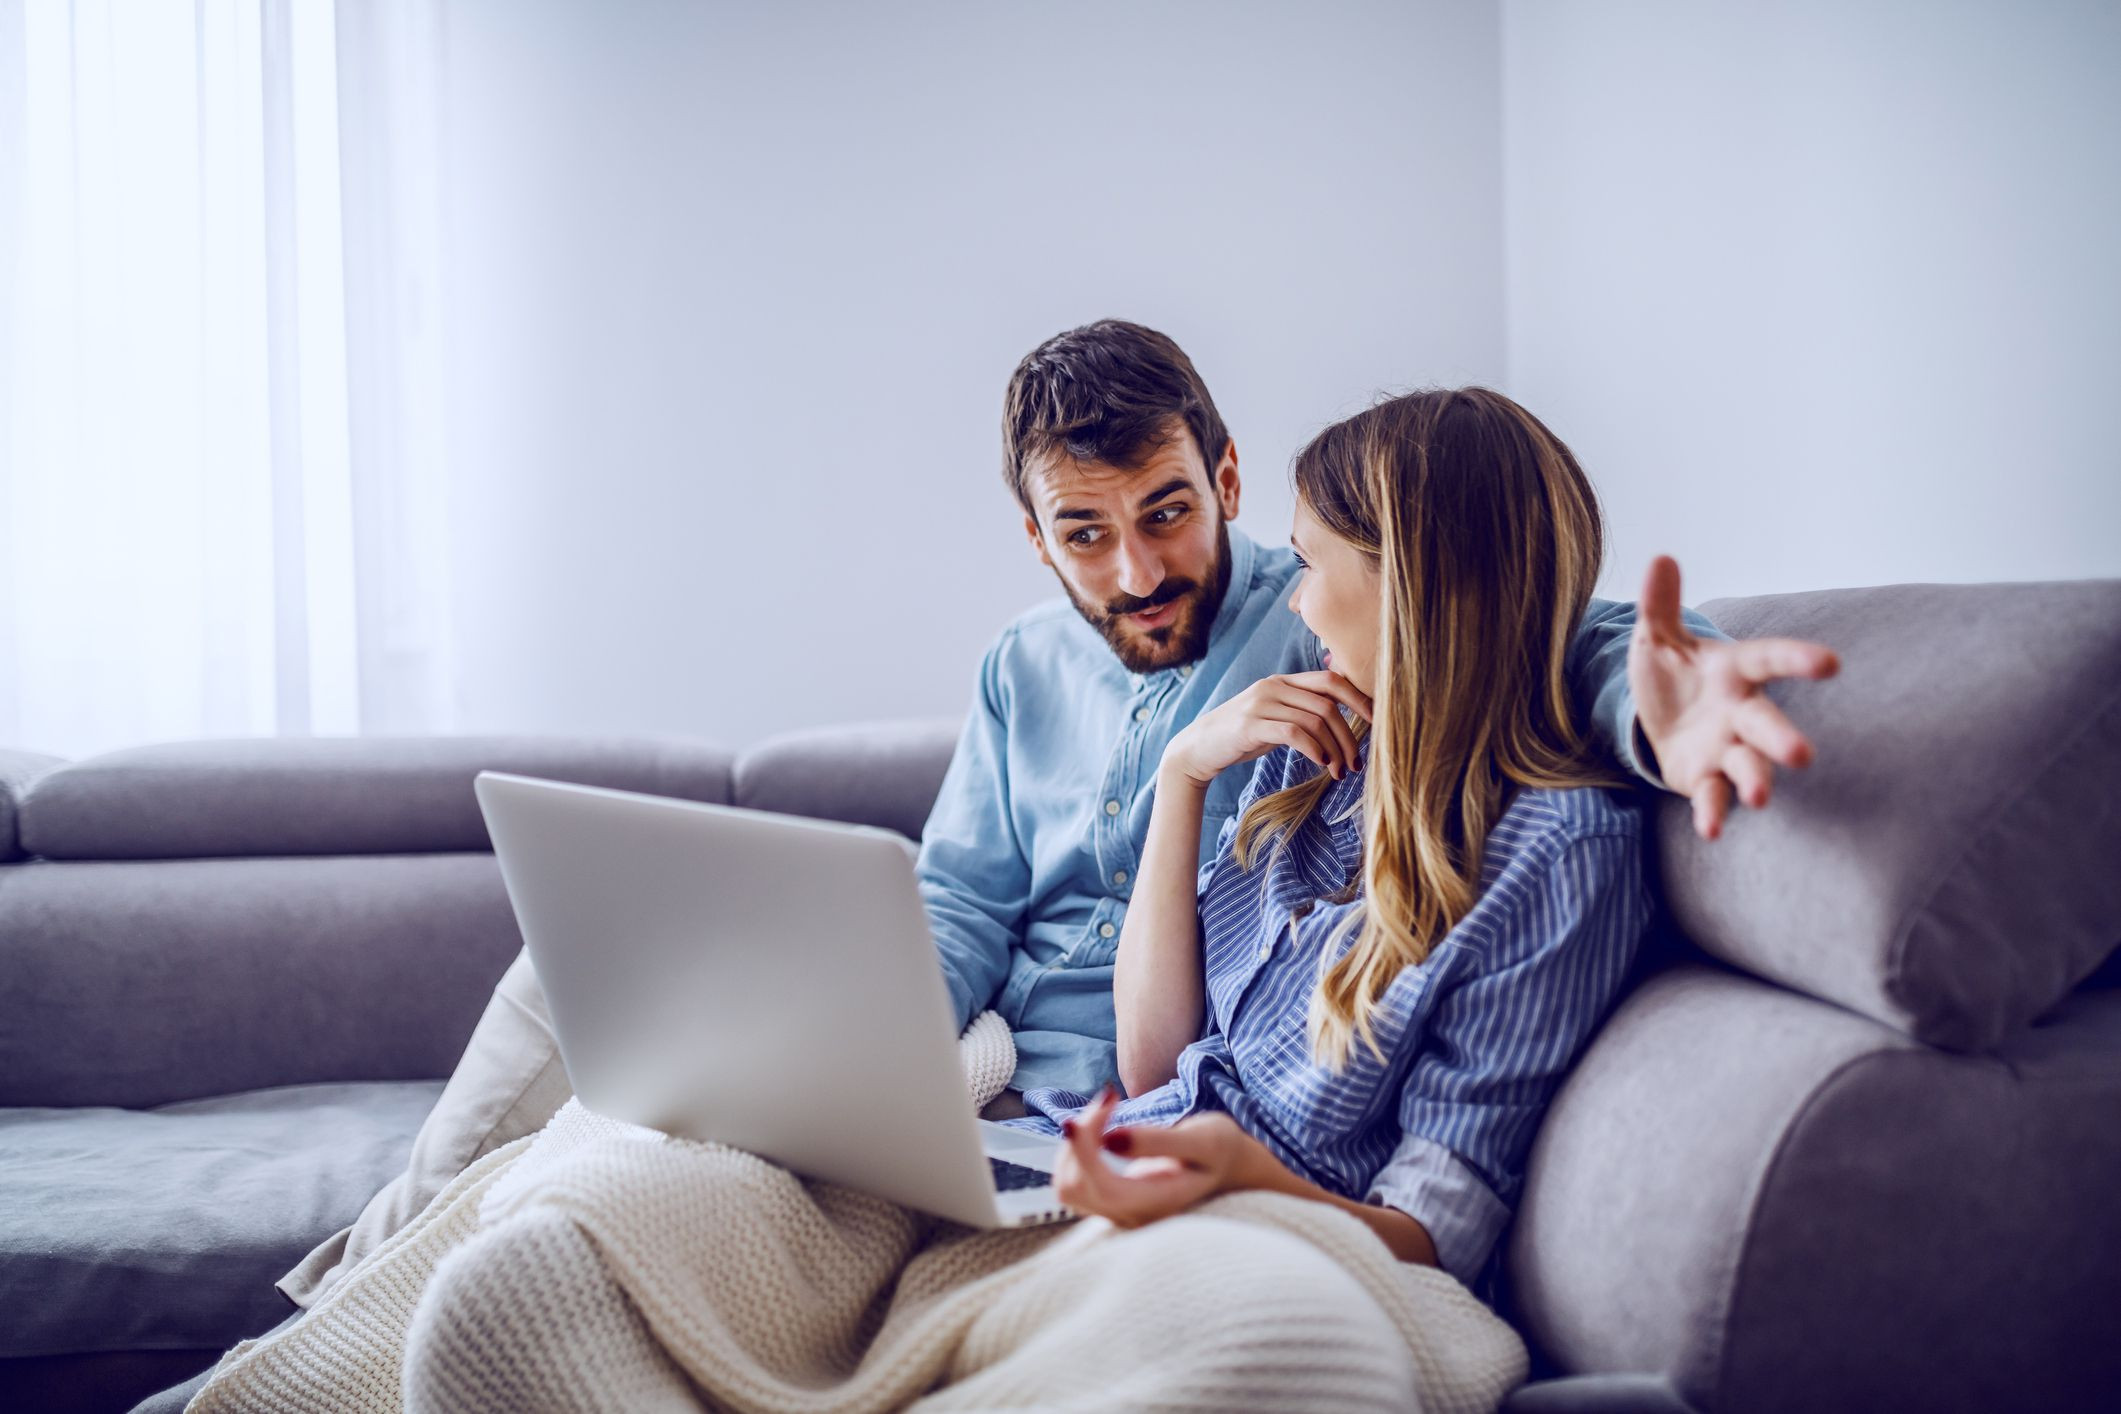 Online Couples Session (Includes GST)